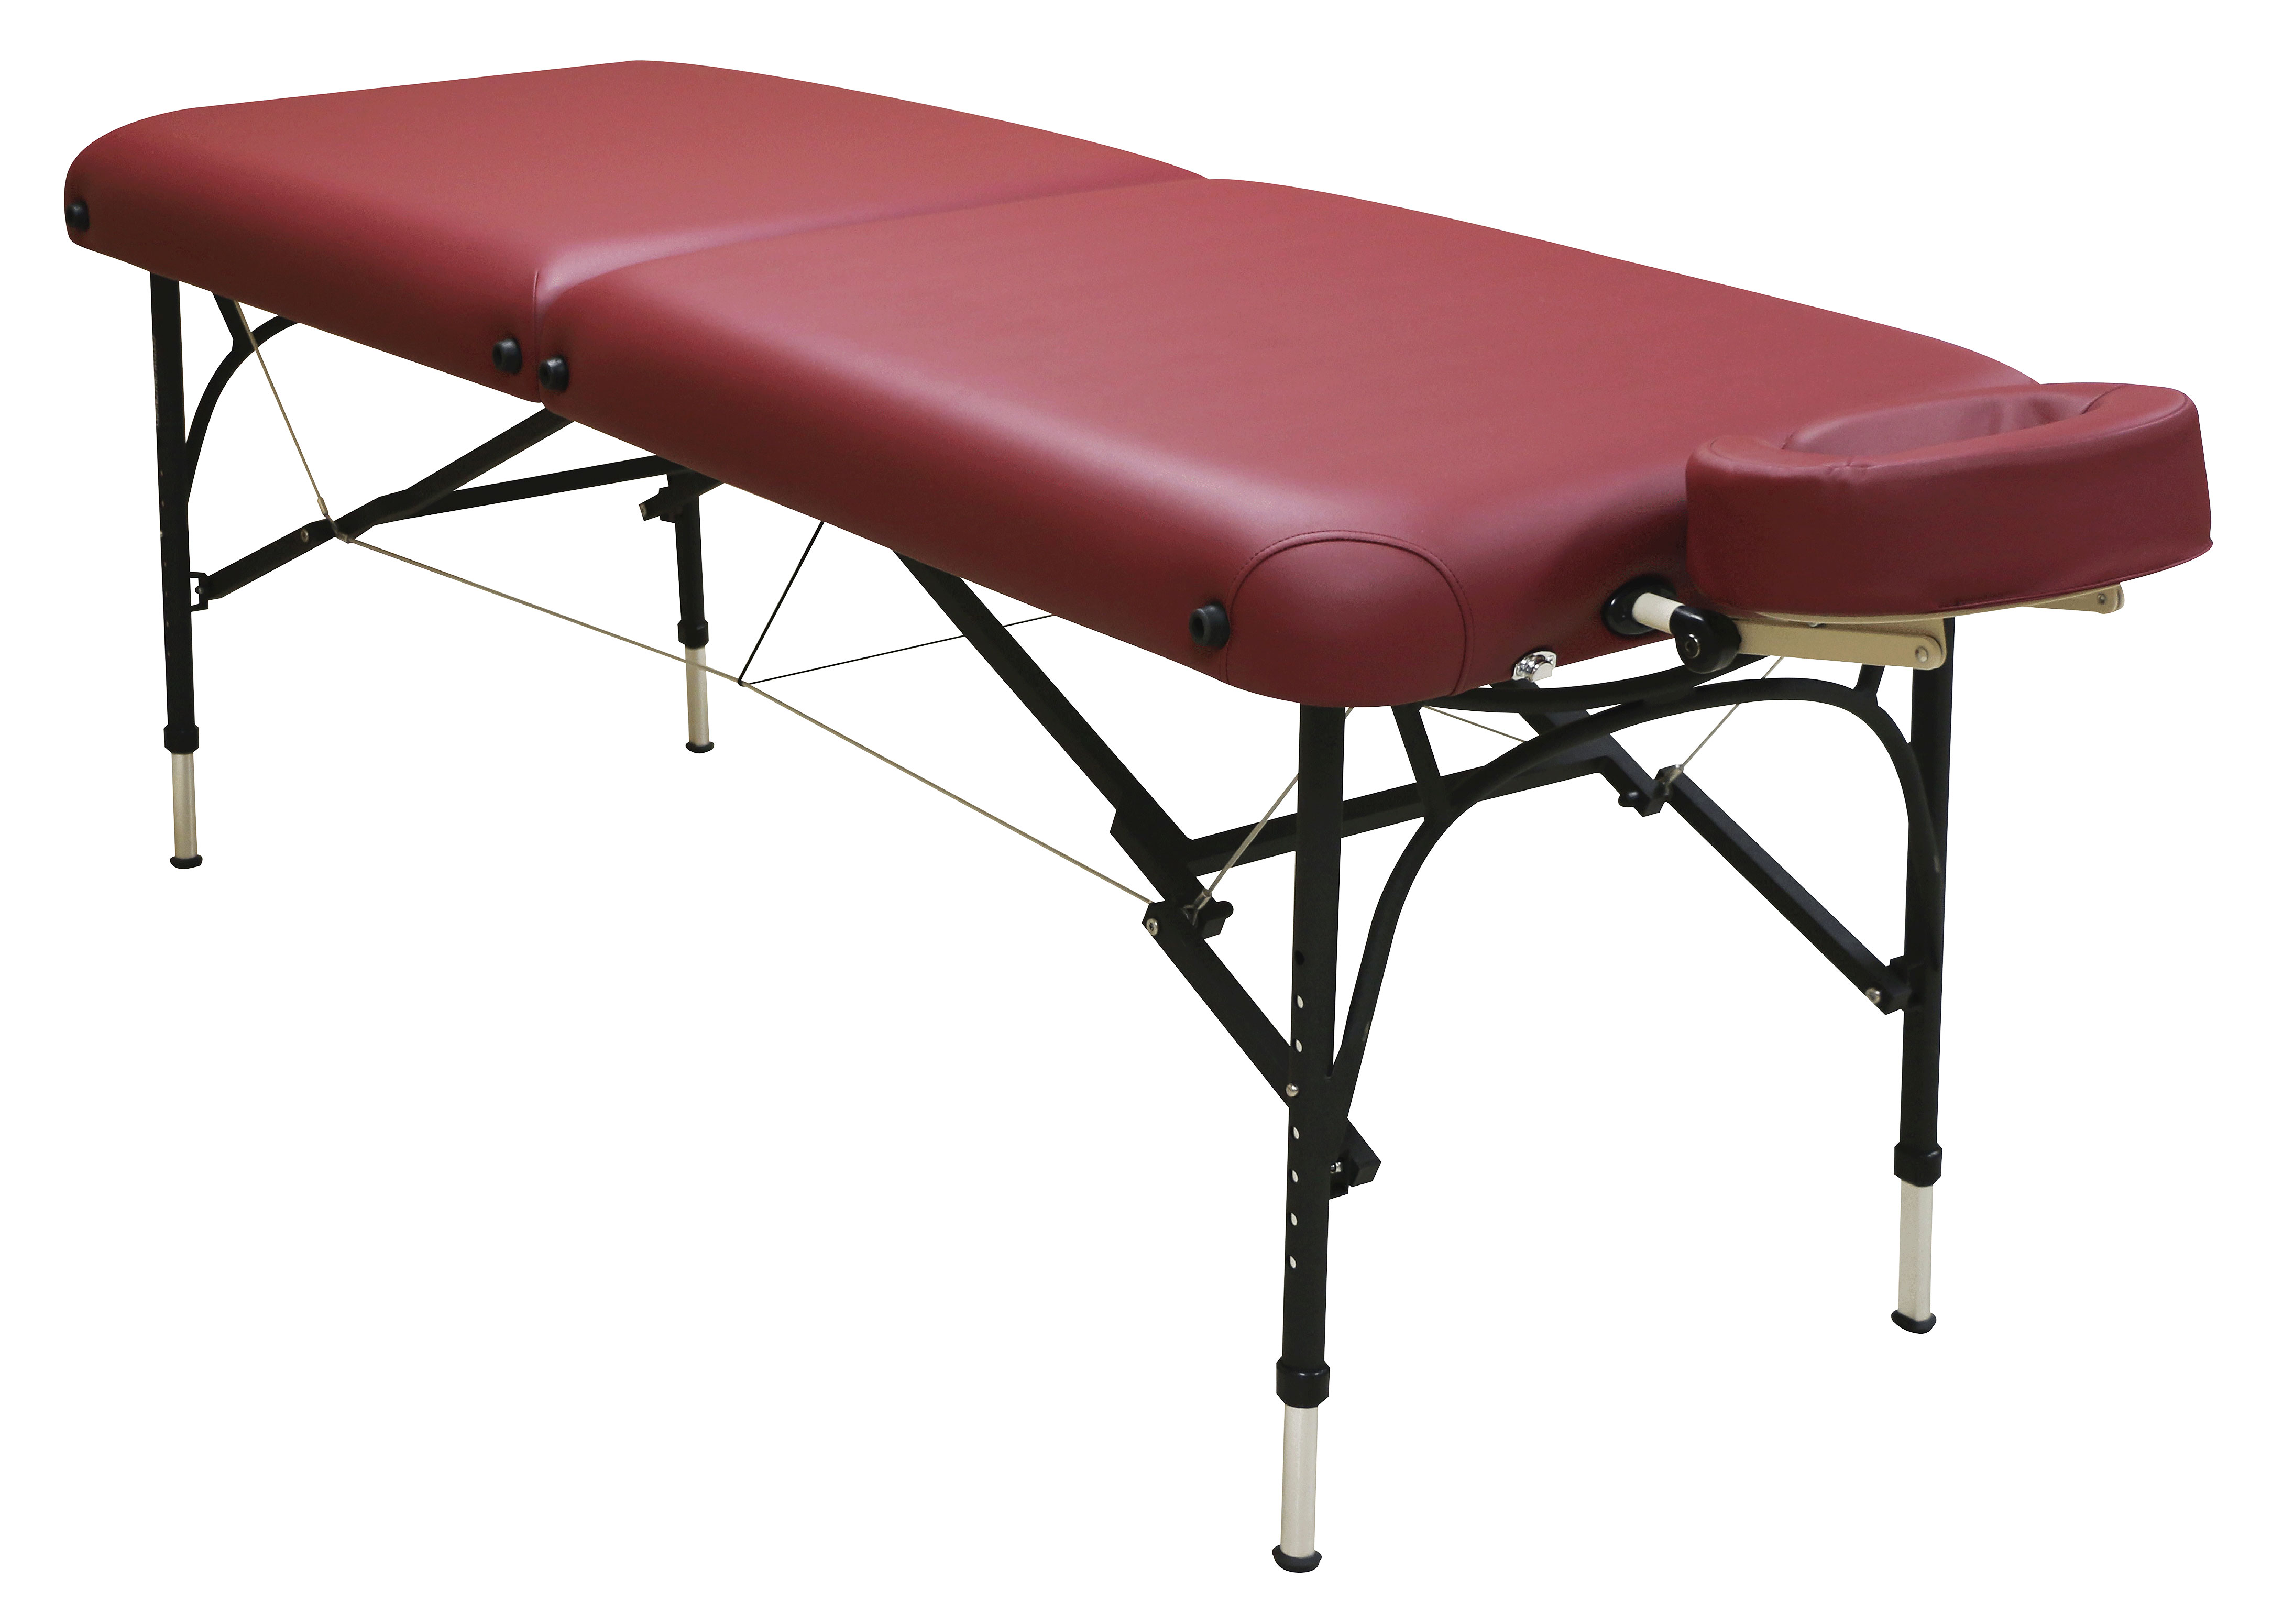 ccw challenger aluminum portable massage table for sale. Black Bedroom Furniture Sets. Home Design Ideas